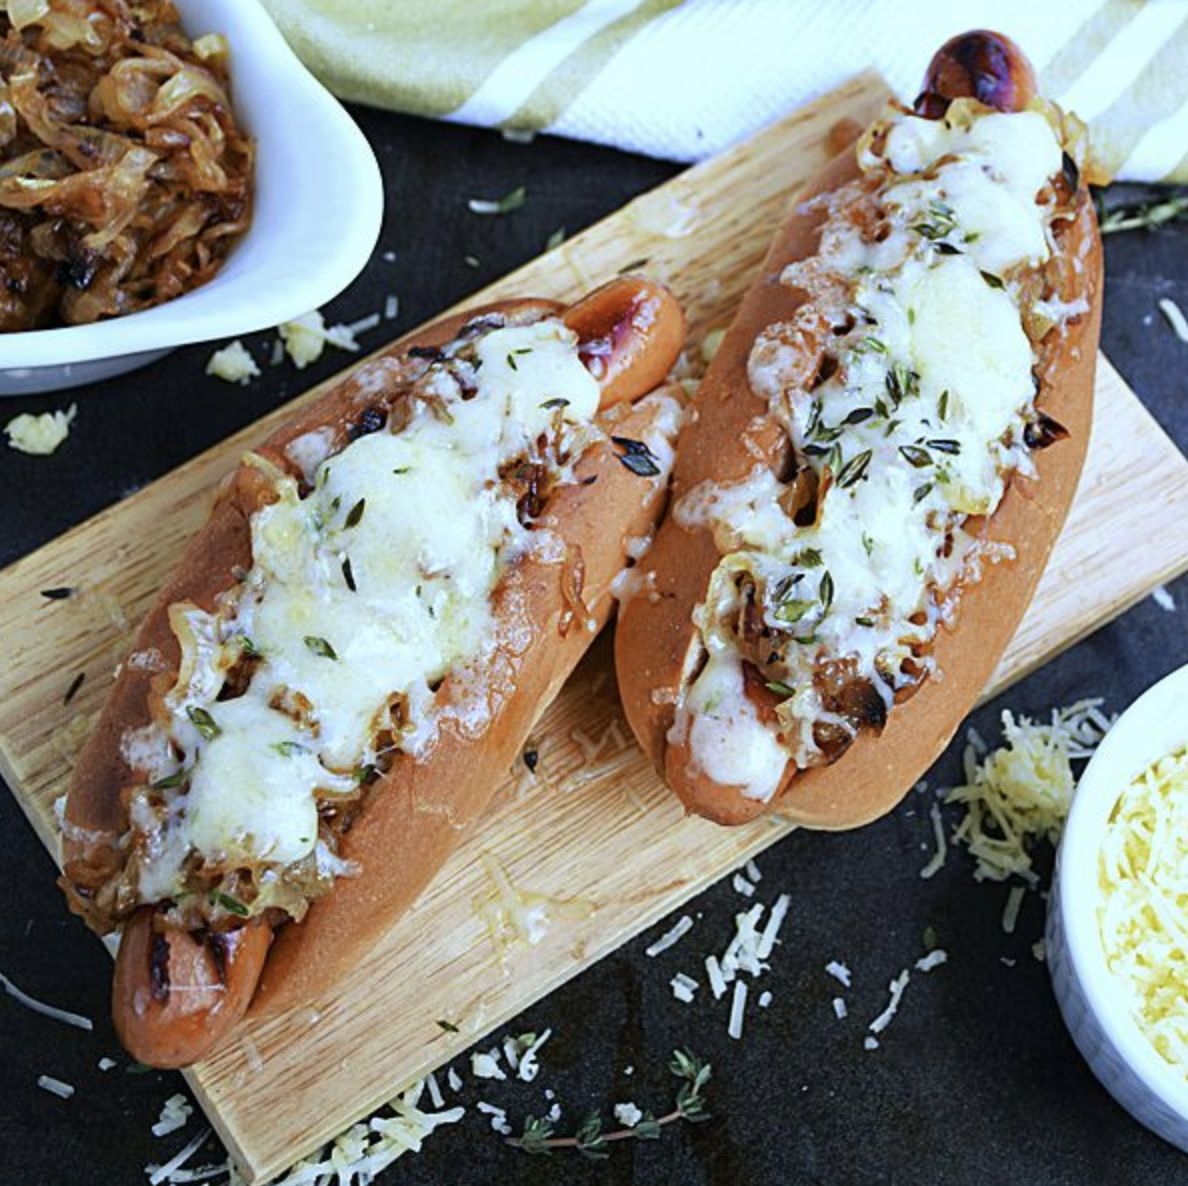 Courtesy of Life Tastes Good